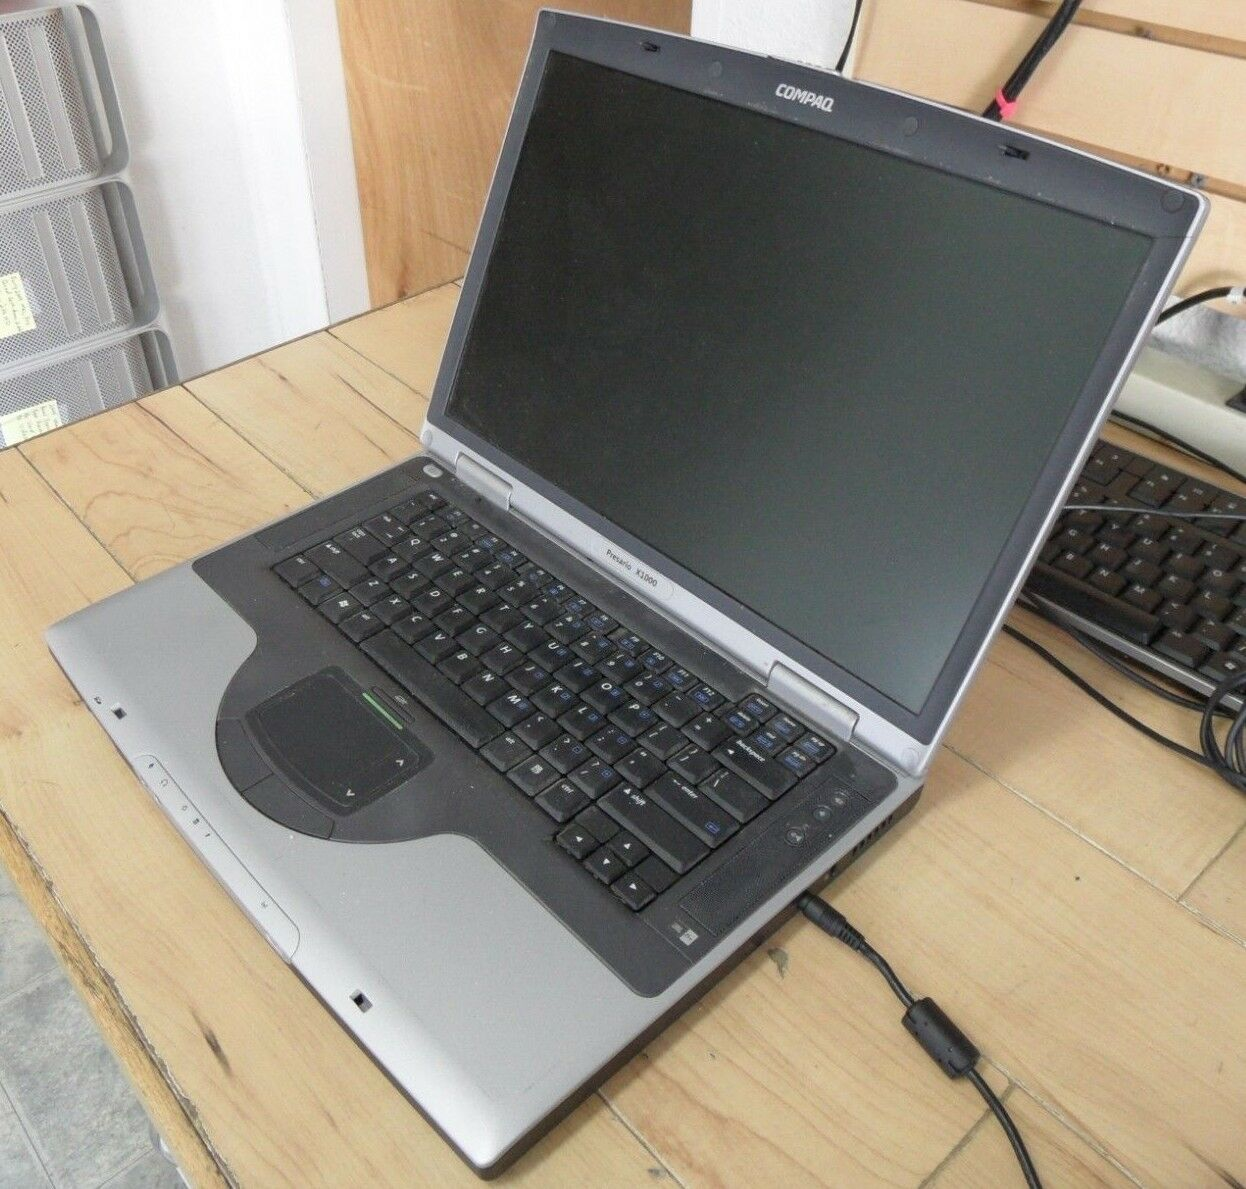 Compaq Presario X1000 / PP2080 Laptop 4 Parts Booted Lubuntu Hard Drive Wiped *